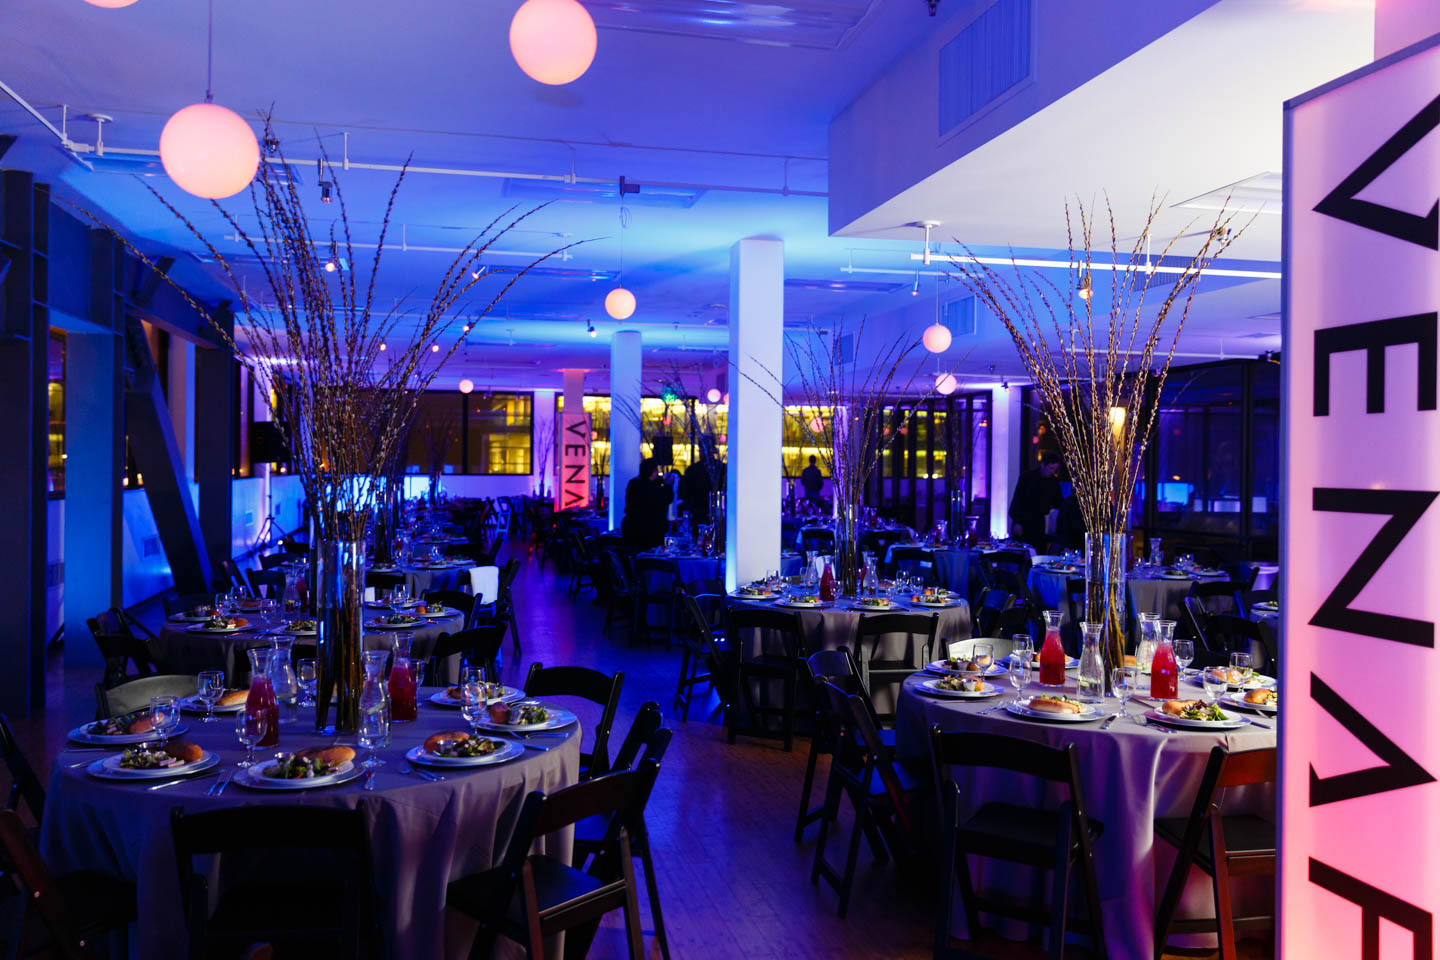 Banquet designed by Le Croissant Catering